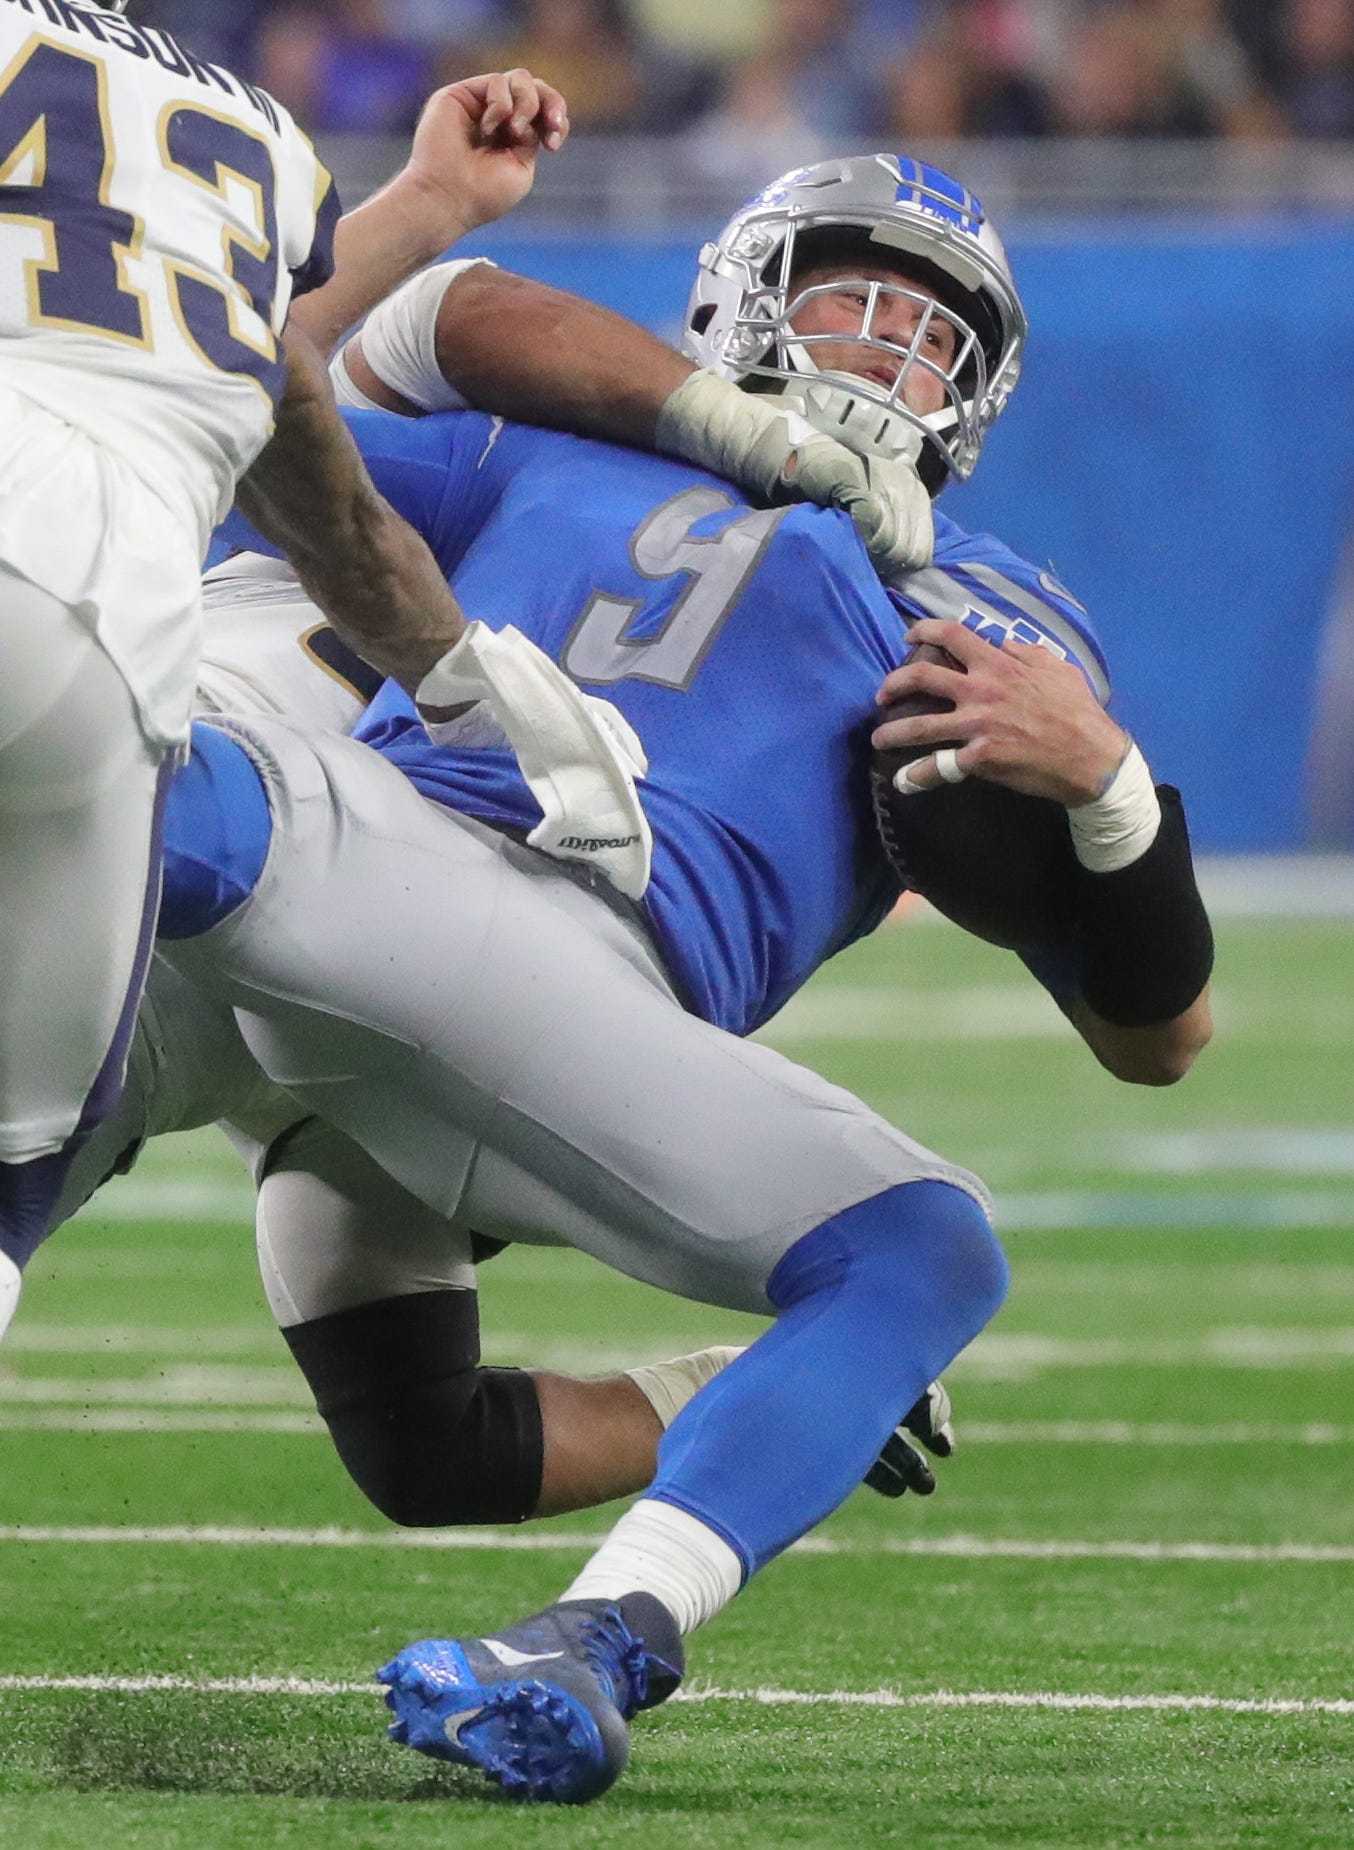 Detroit Lions quarterback Matthew Stafford is slammed to the ground by Los Angeles Rams defensive tackle Aaron Donald in the second half Sunday, Dec. 2, 2018 at Ford Field in Detroit.